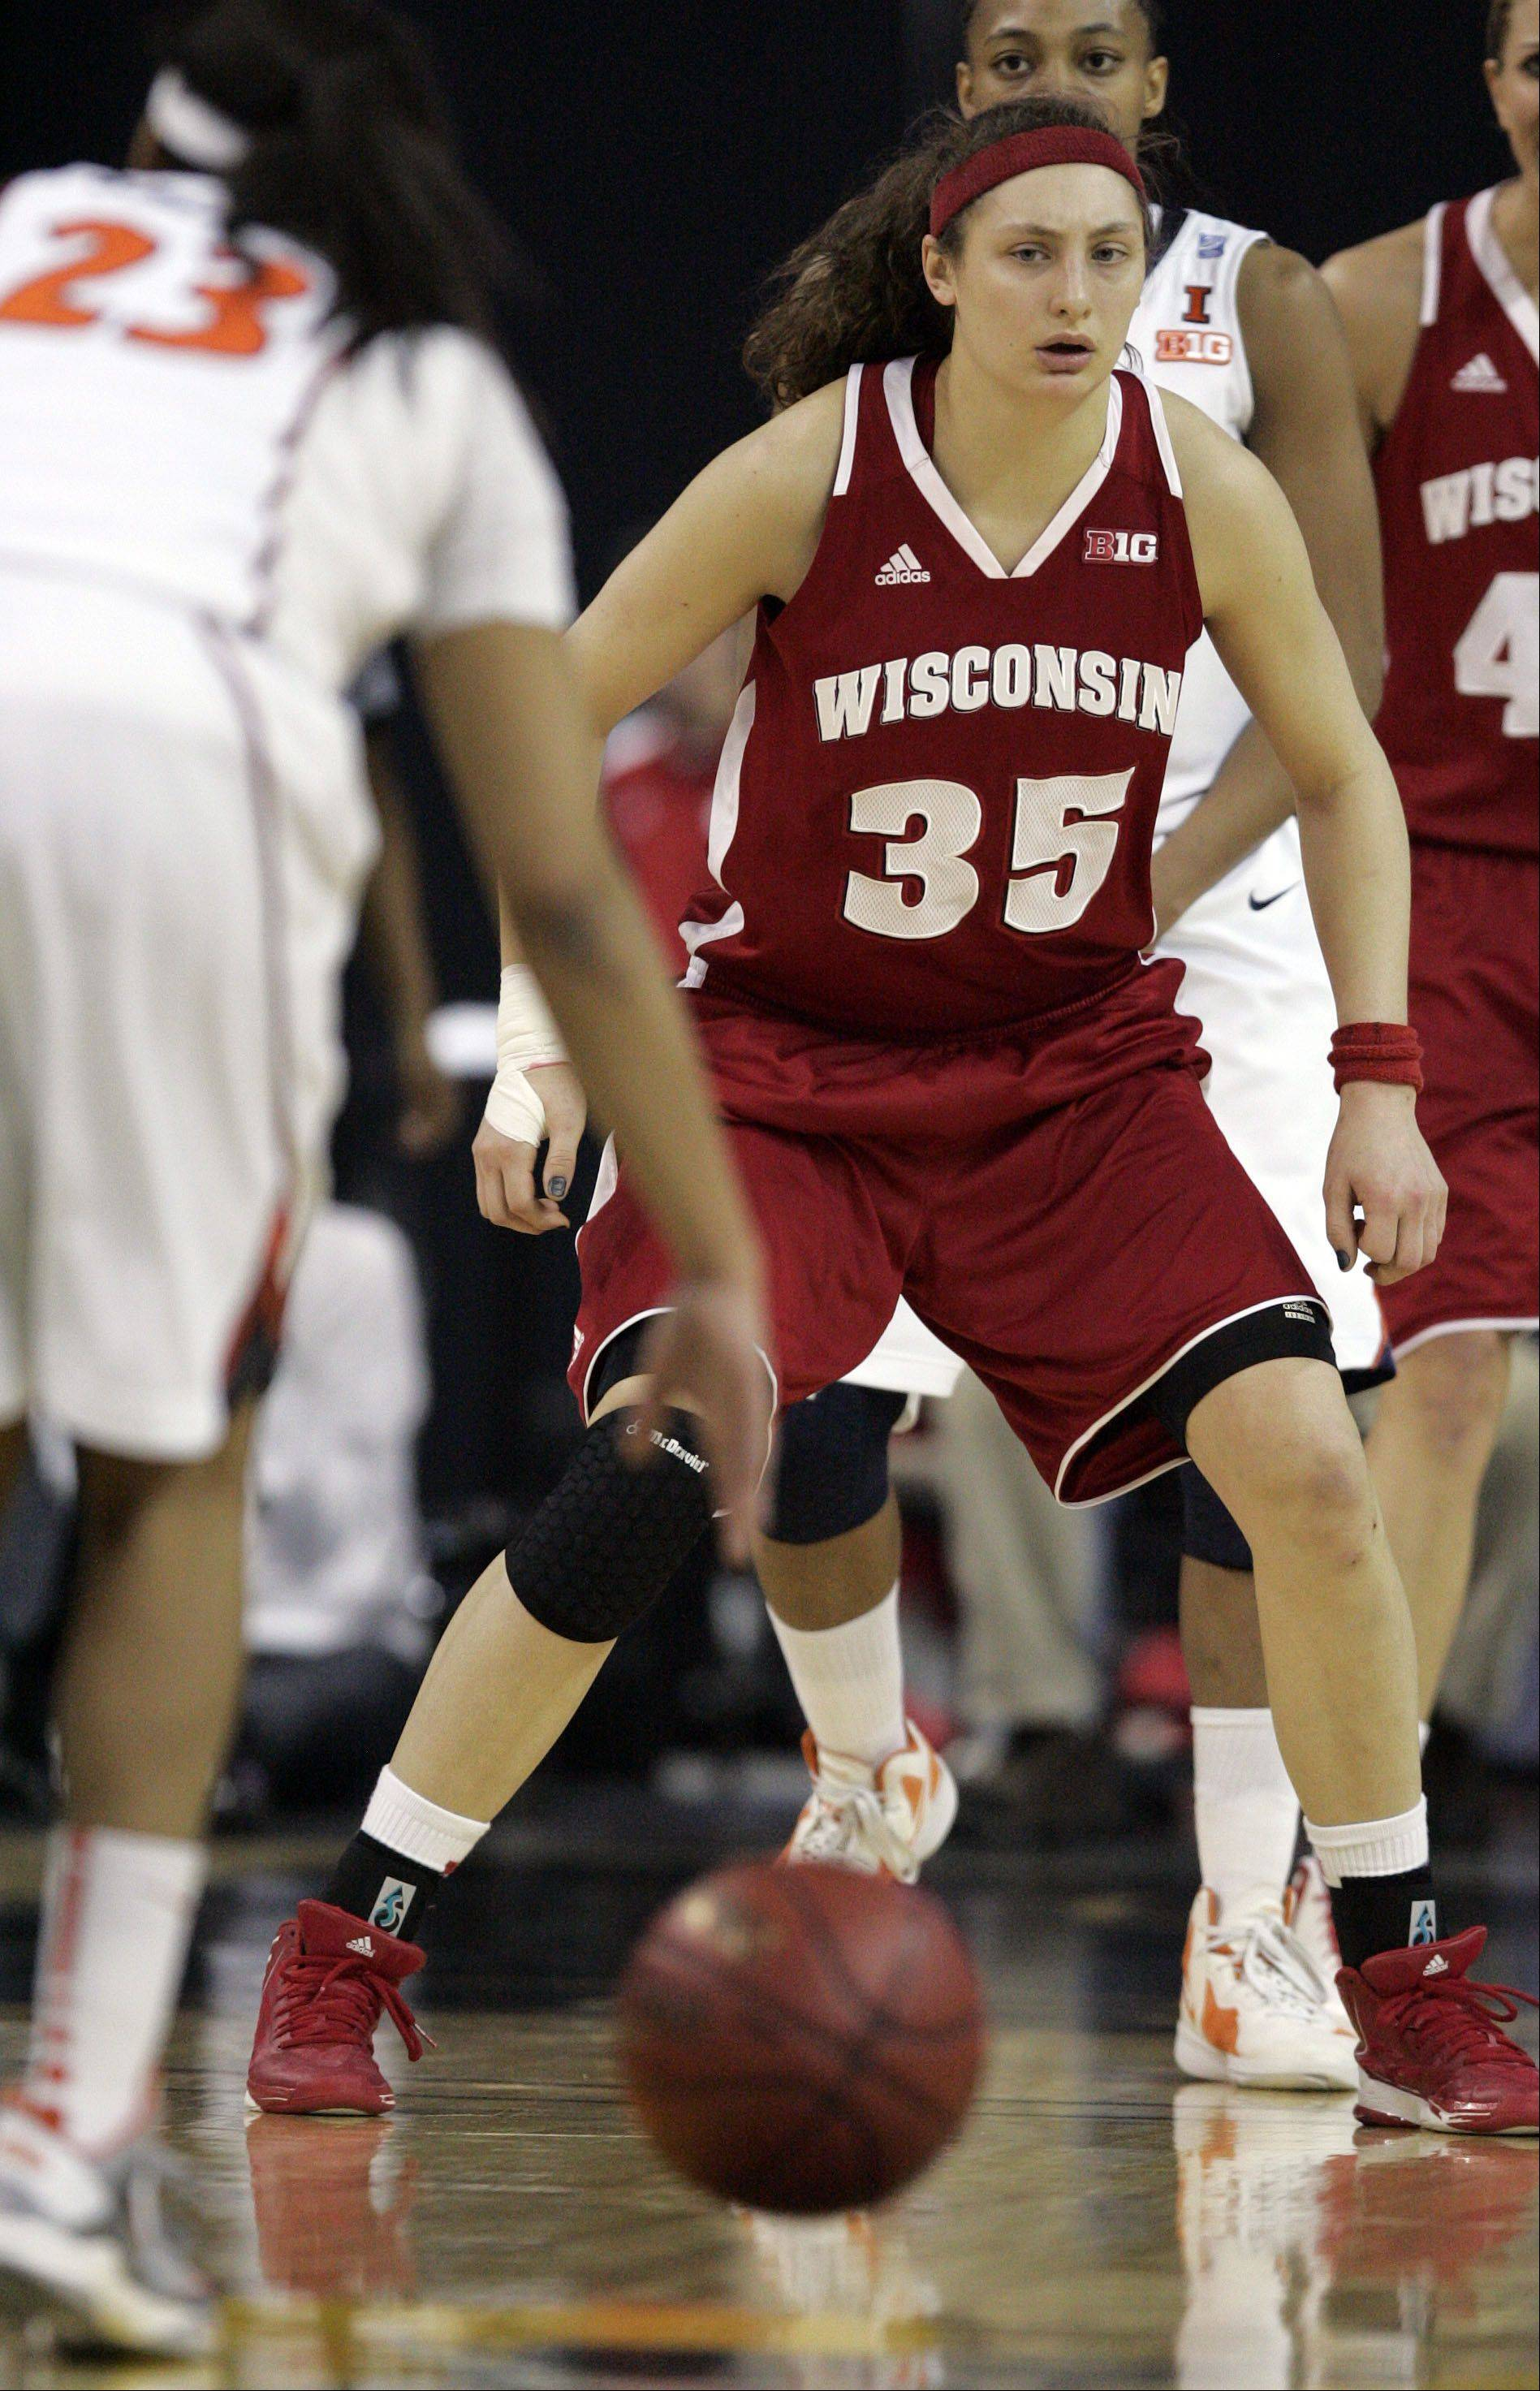 Bartlett's Gulczynski thriving at Wisconsin